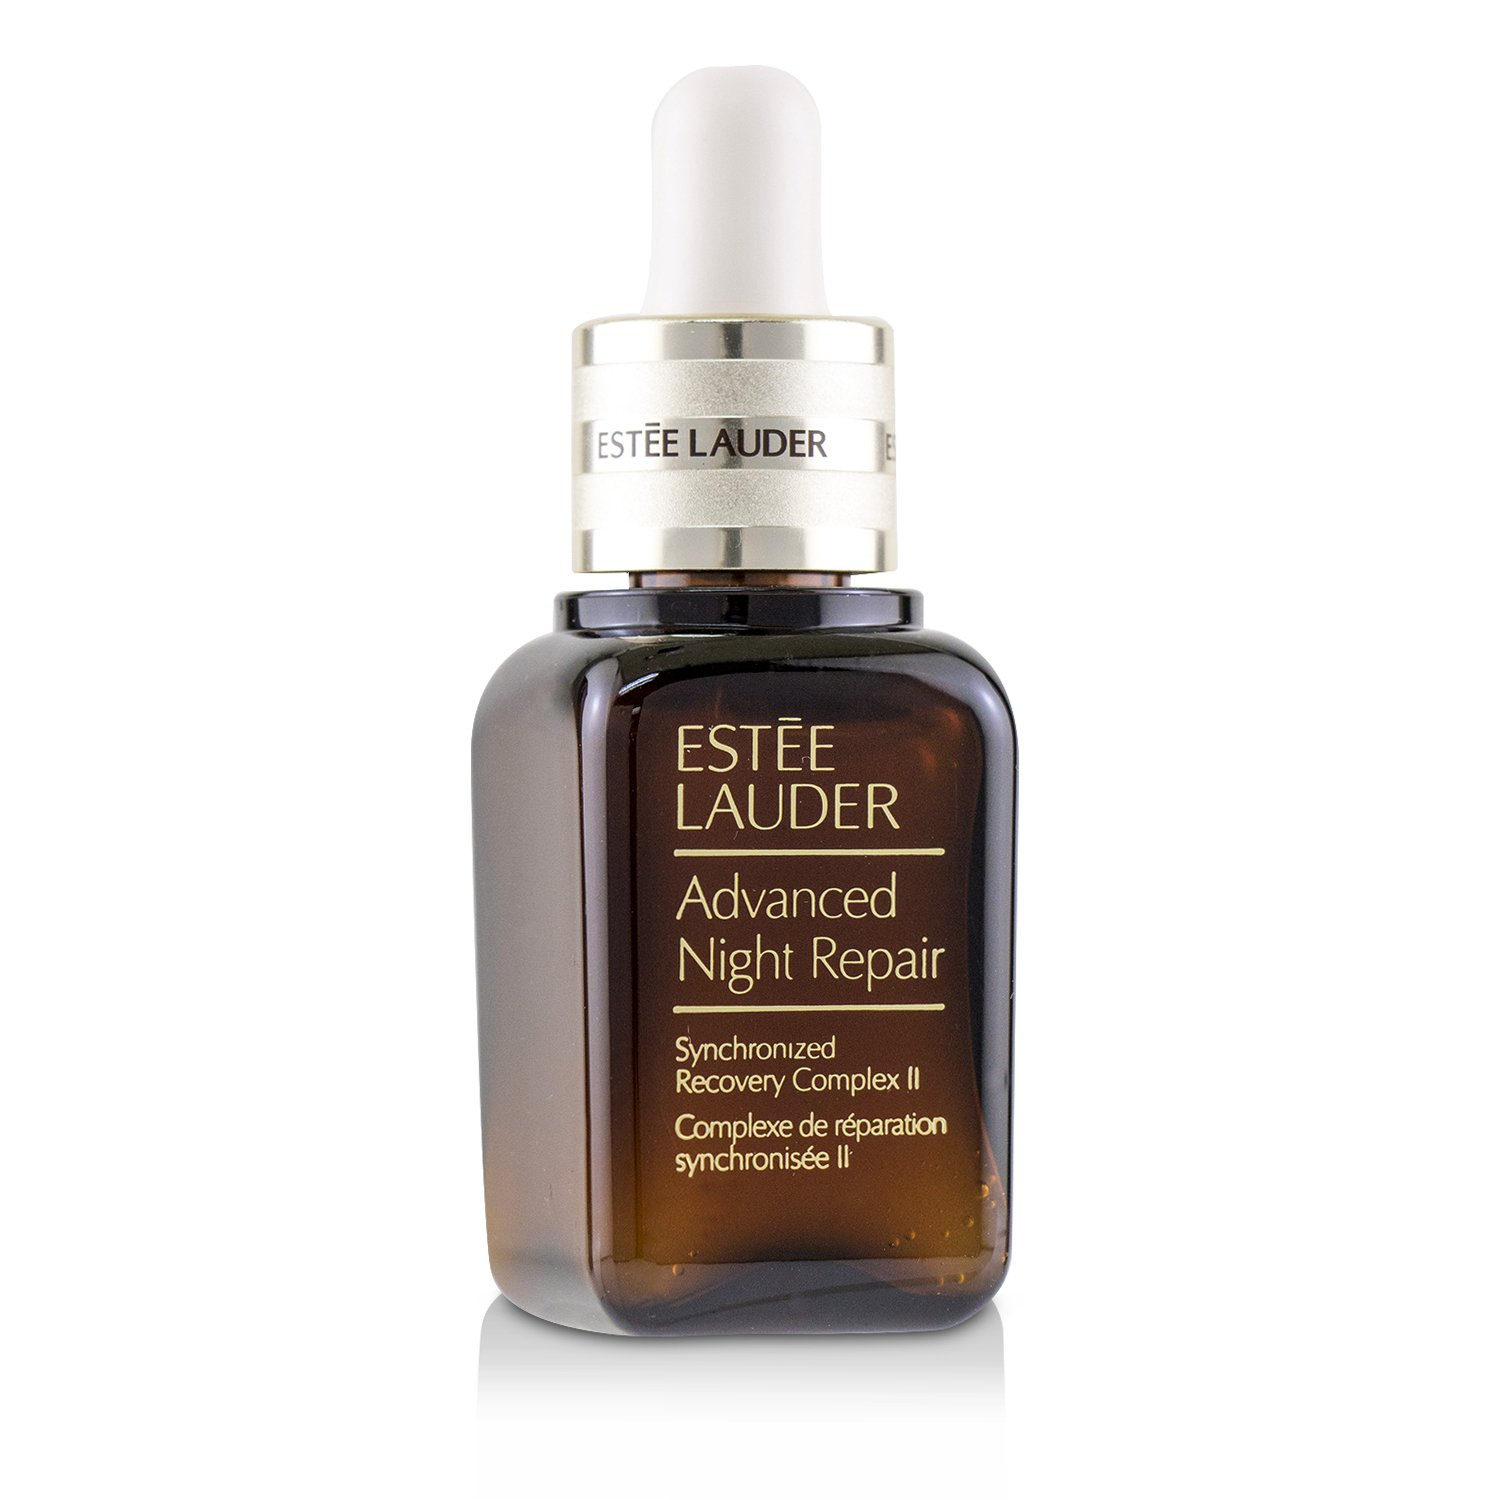 Estee-Lauder-Advanced-Night-Repair-Synchronized-Recovery-Complex-II-30ml-1oz thumbnail 3